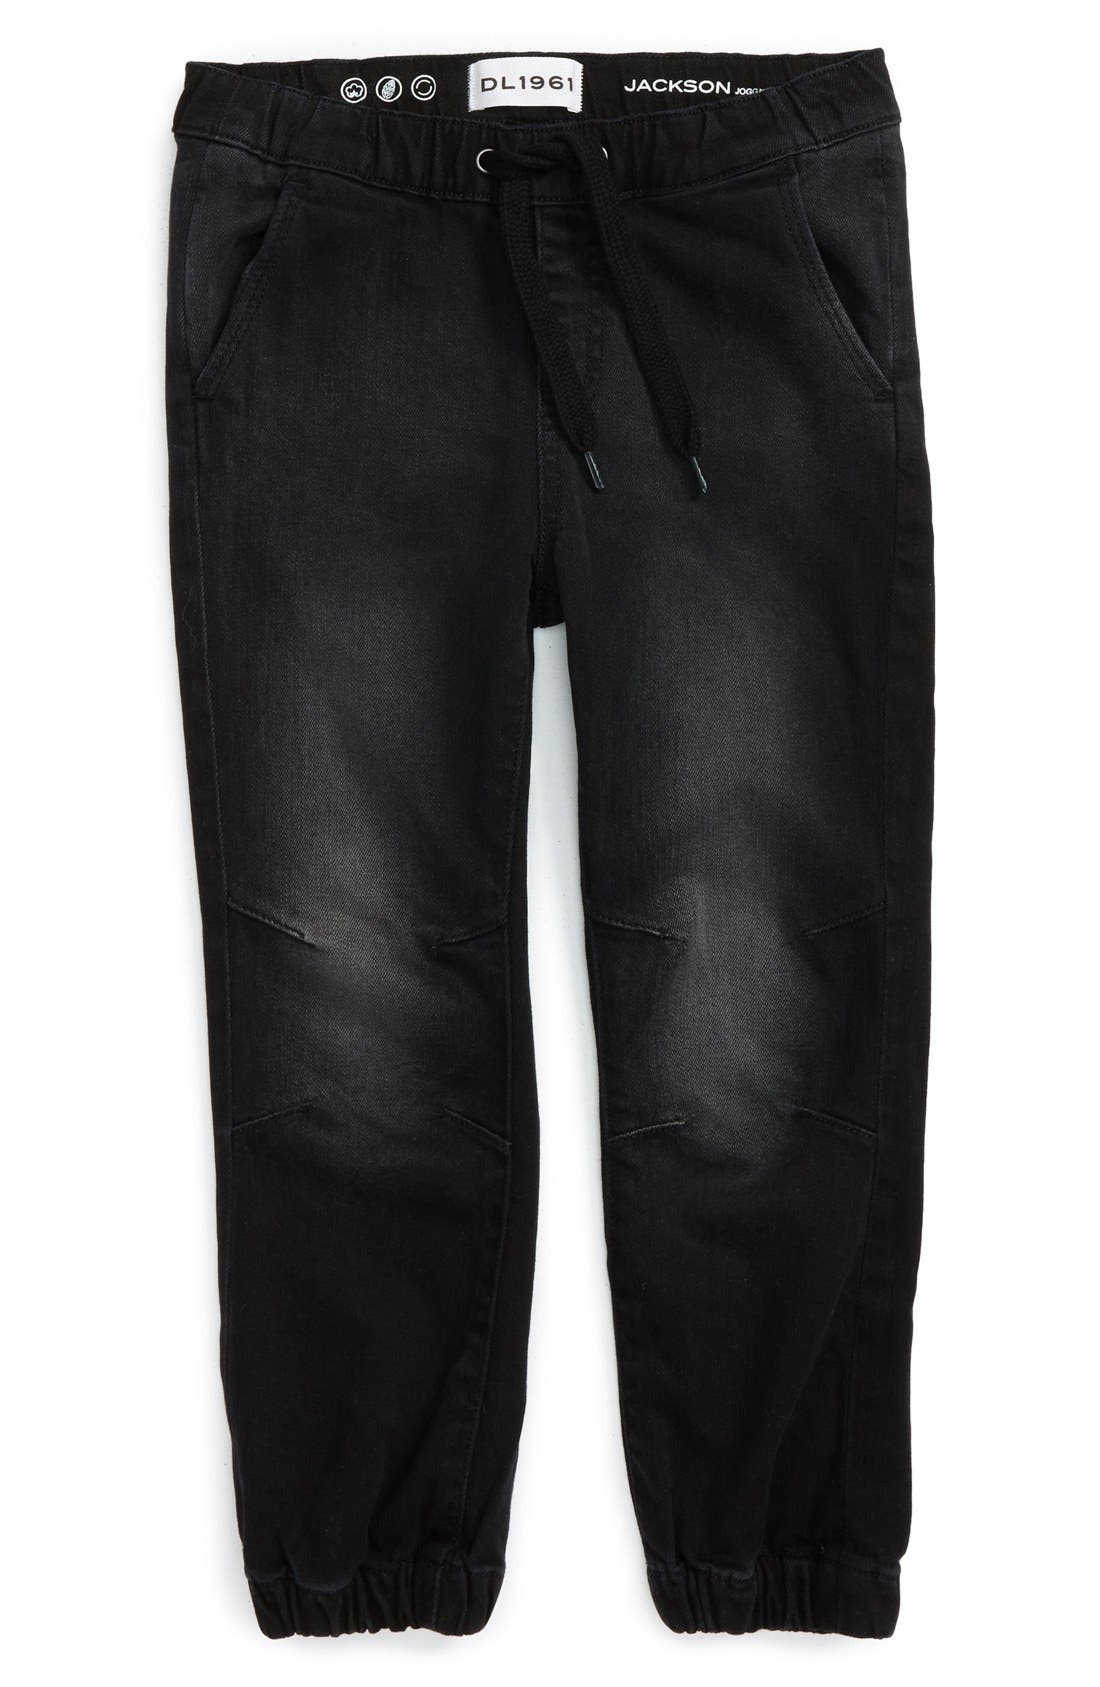 'Jackson' Jogger Pants,                         Main,                         color, Fuse